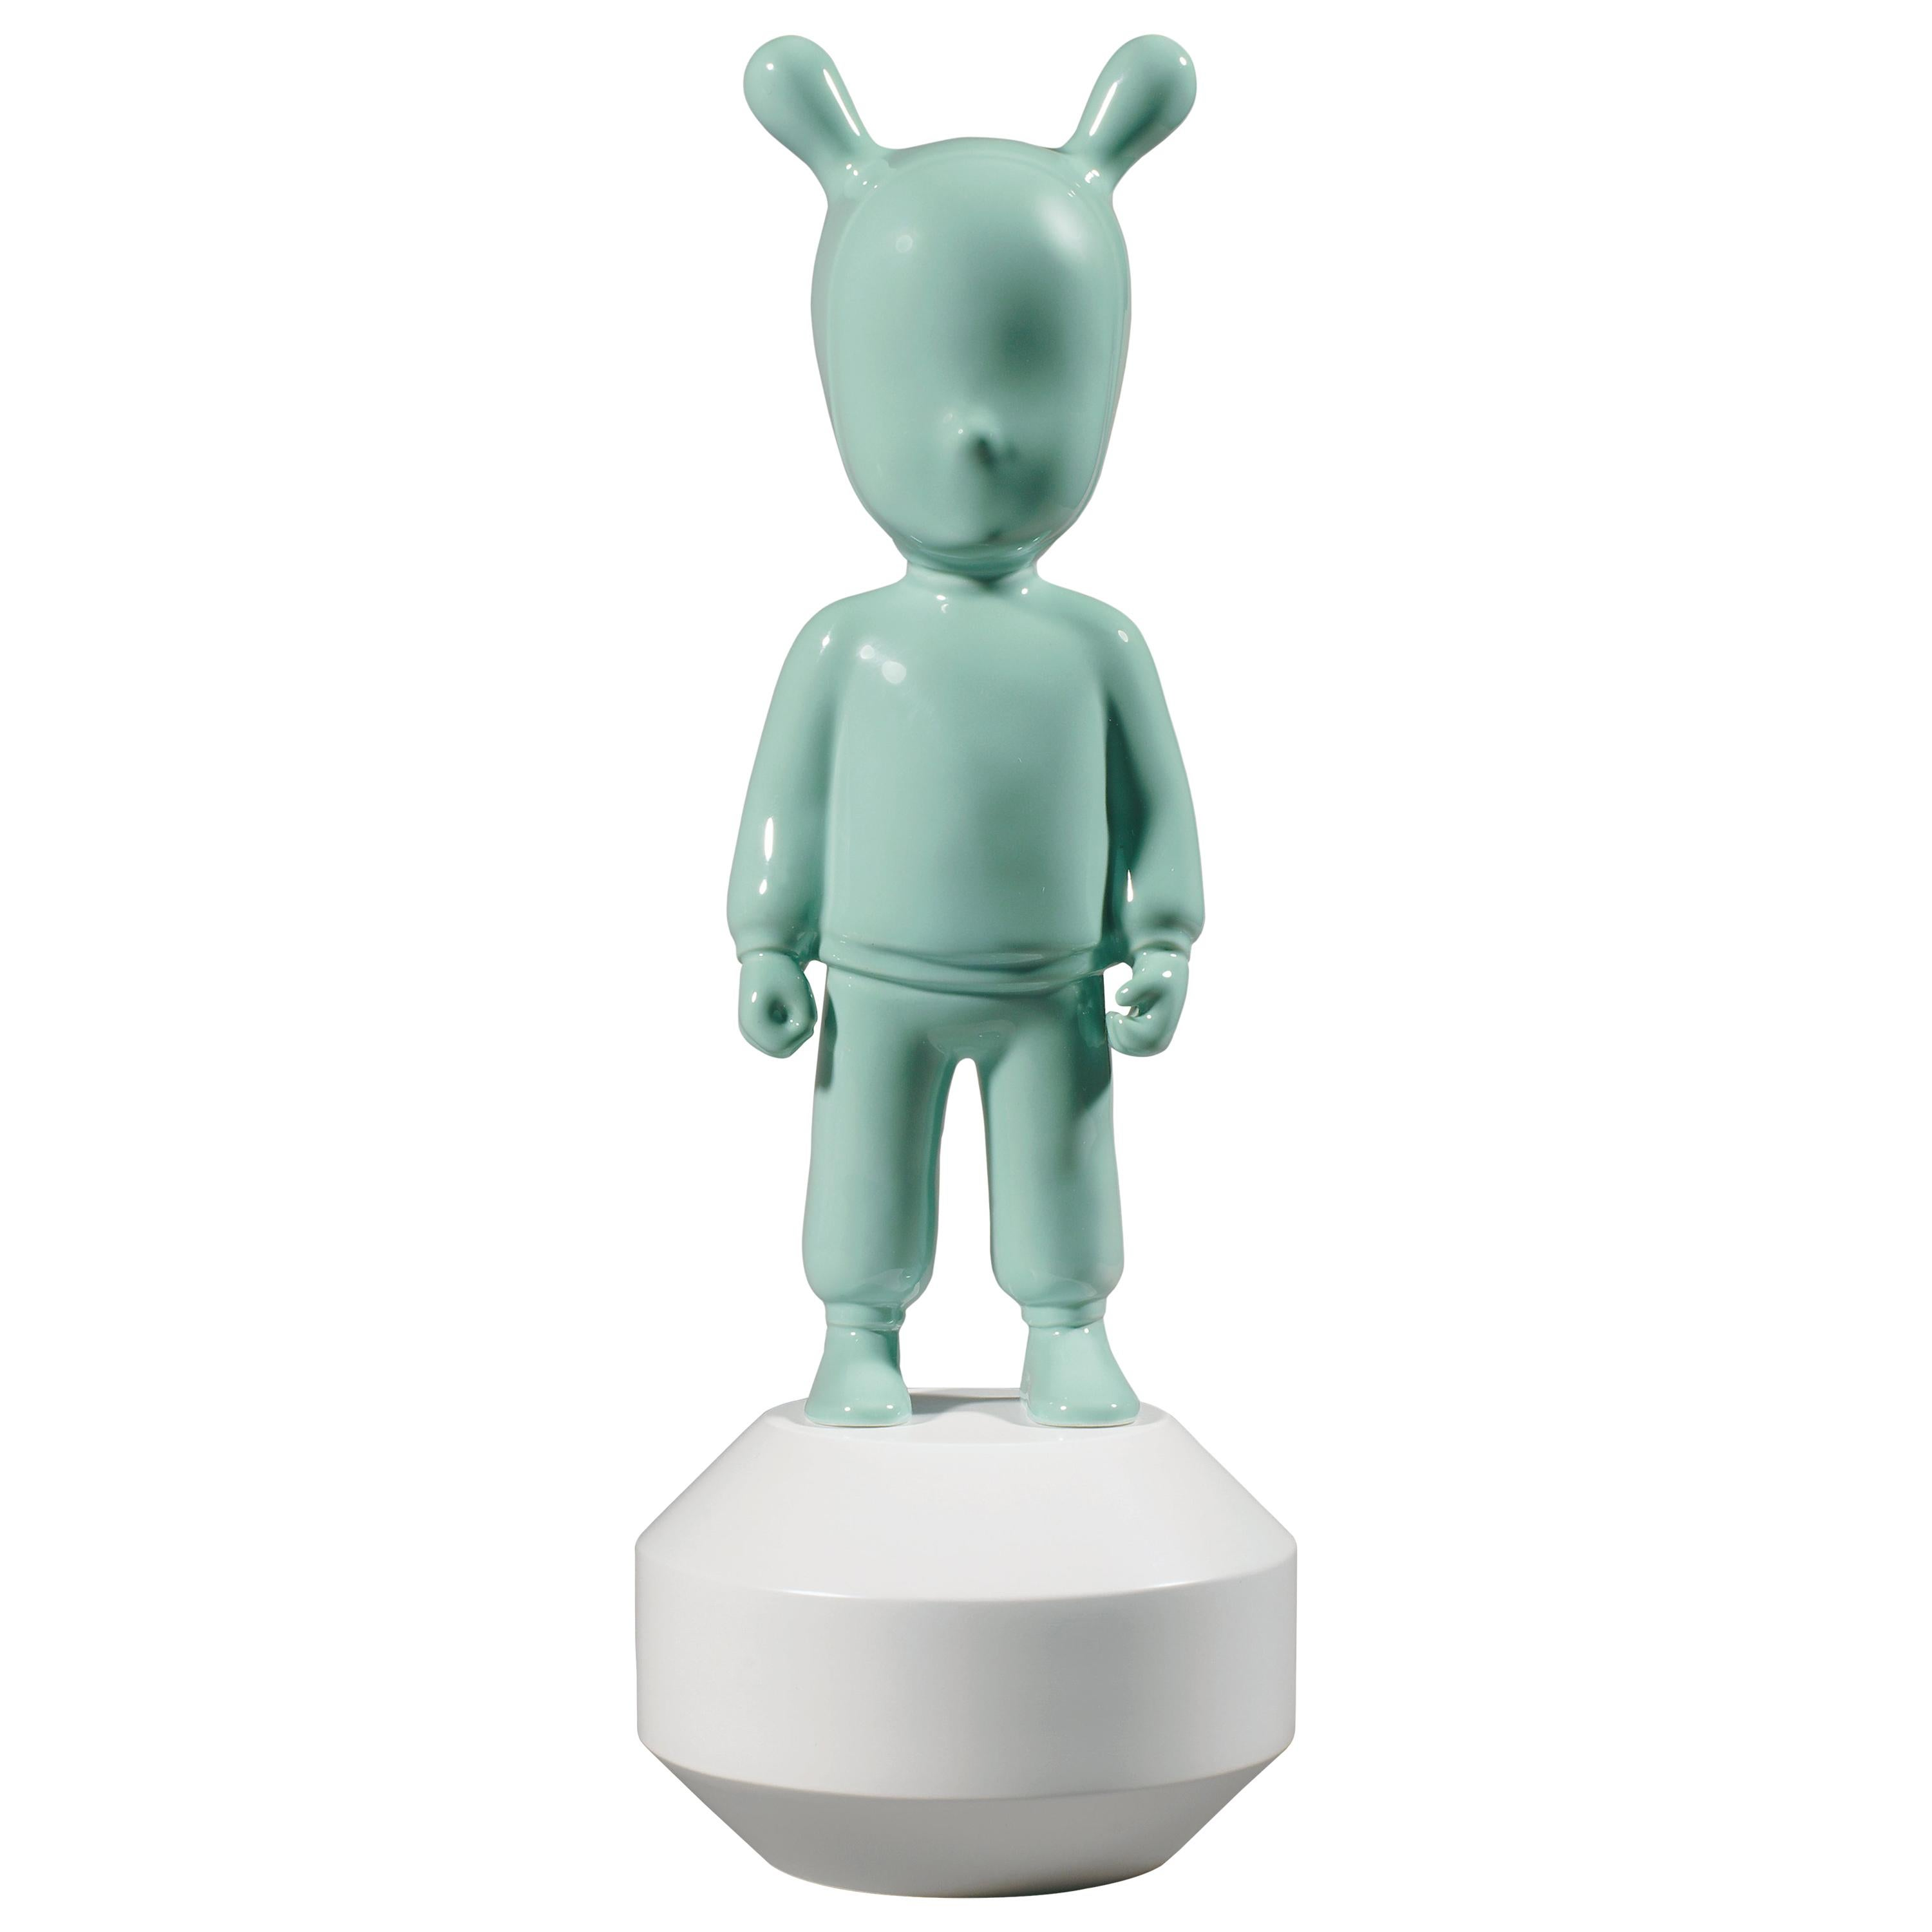 Lladro The Green Guest Small Figurine by Jaime Hayon